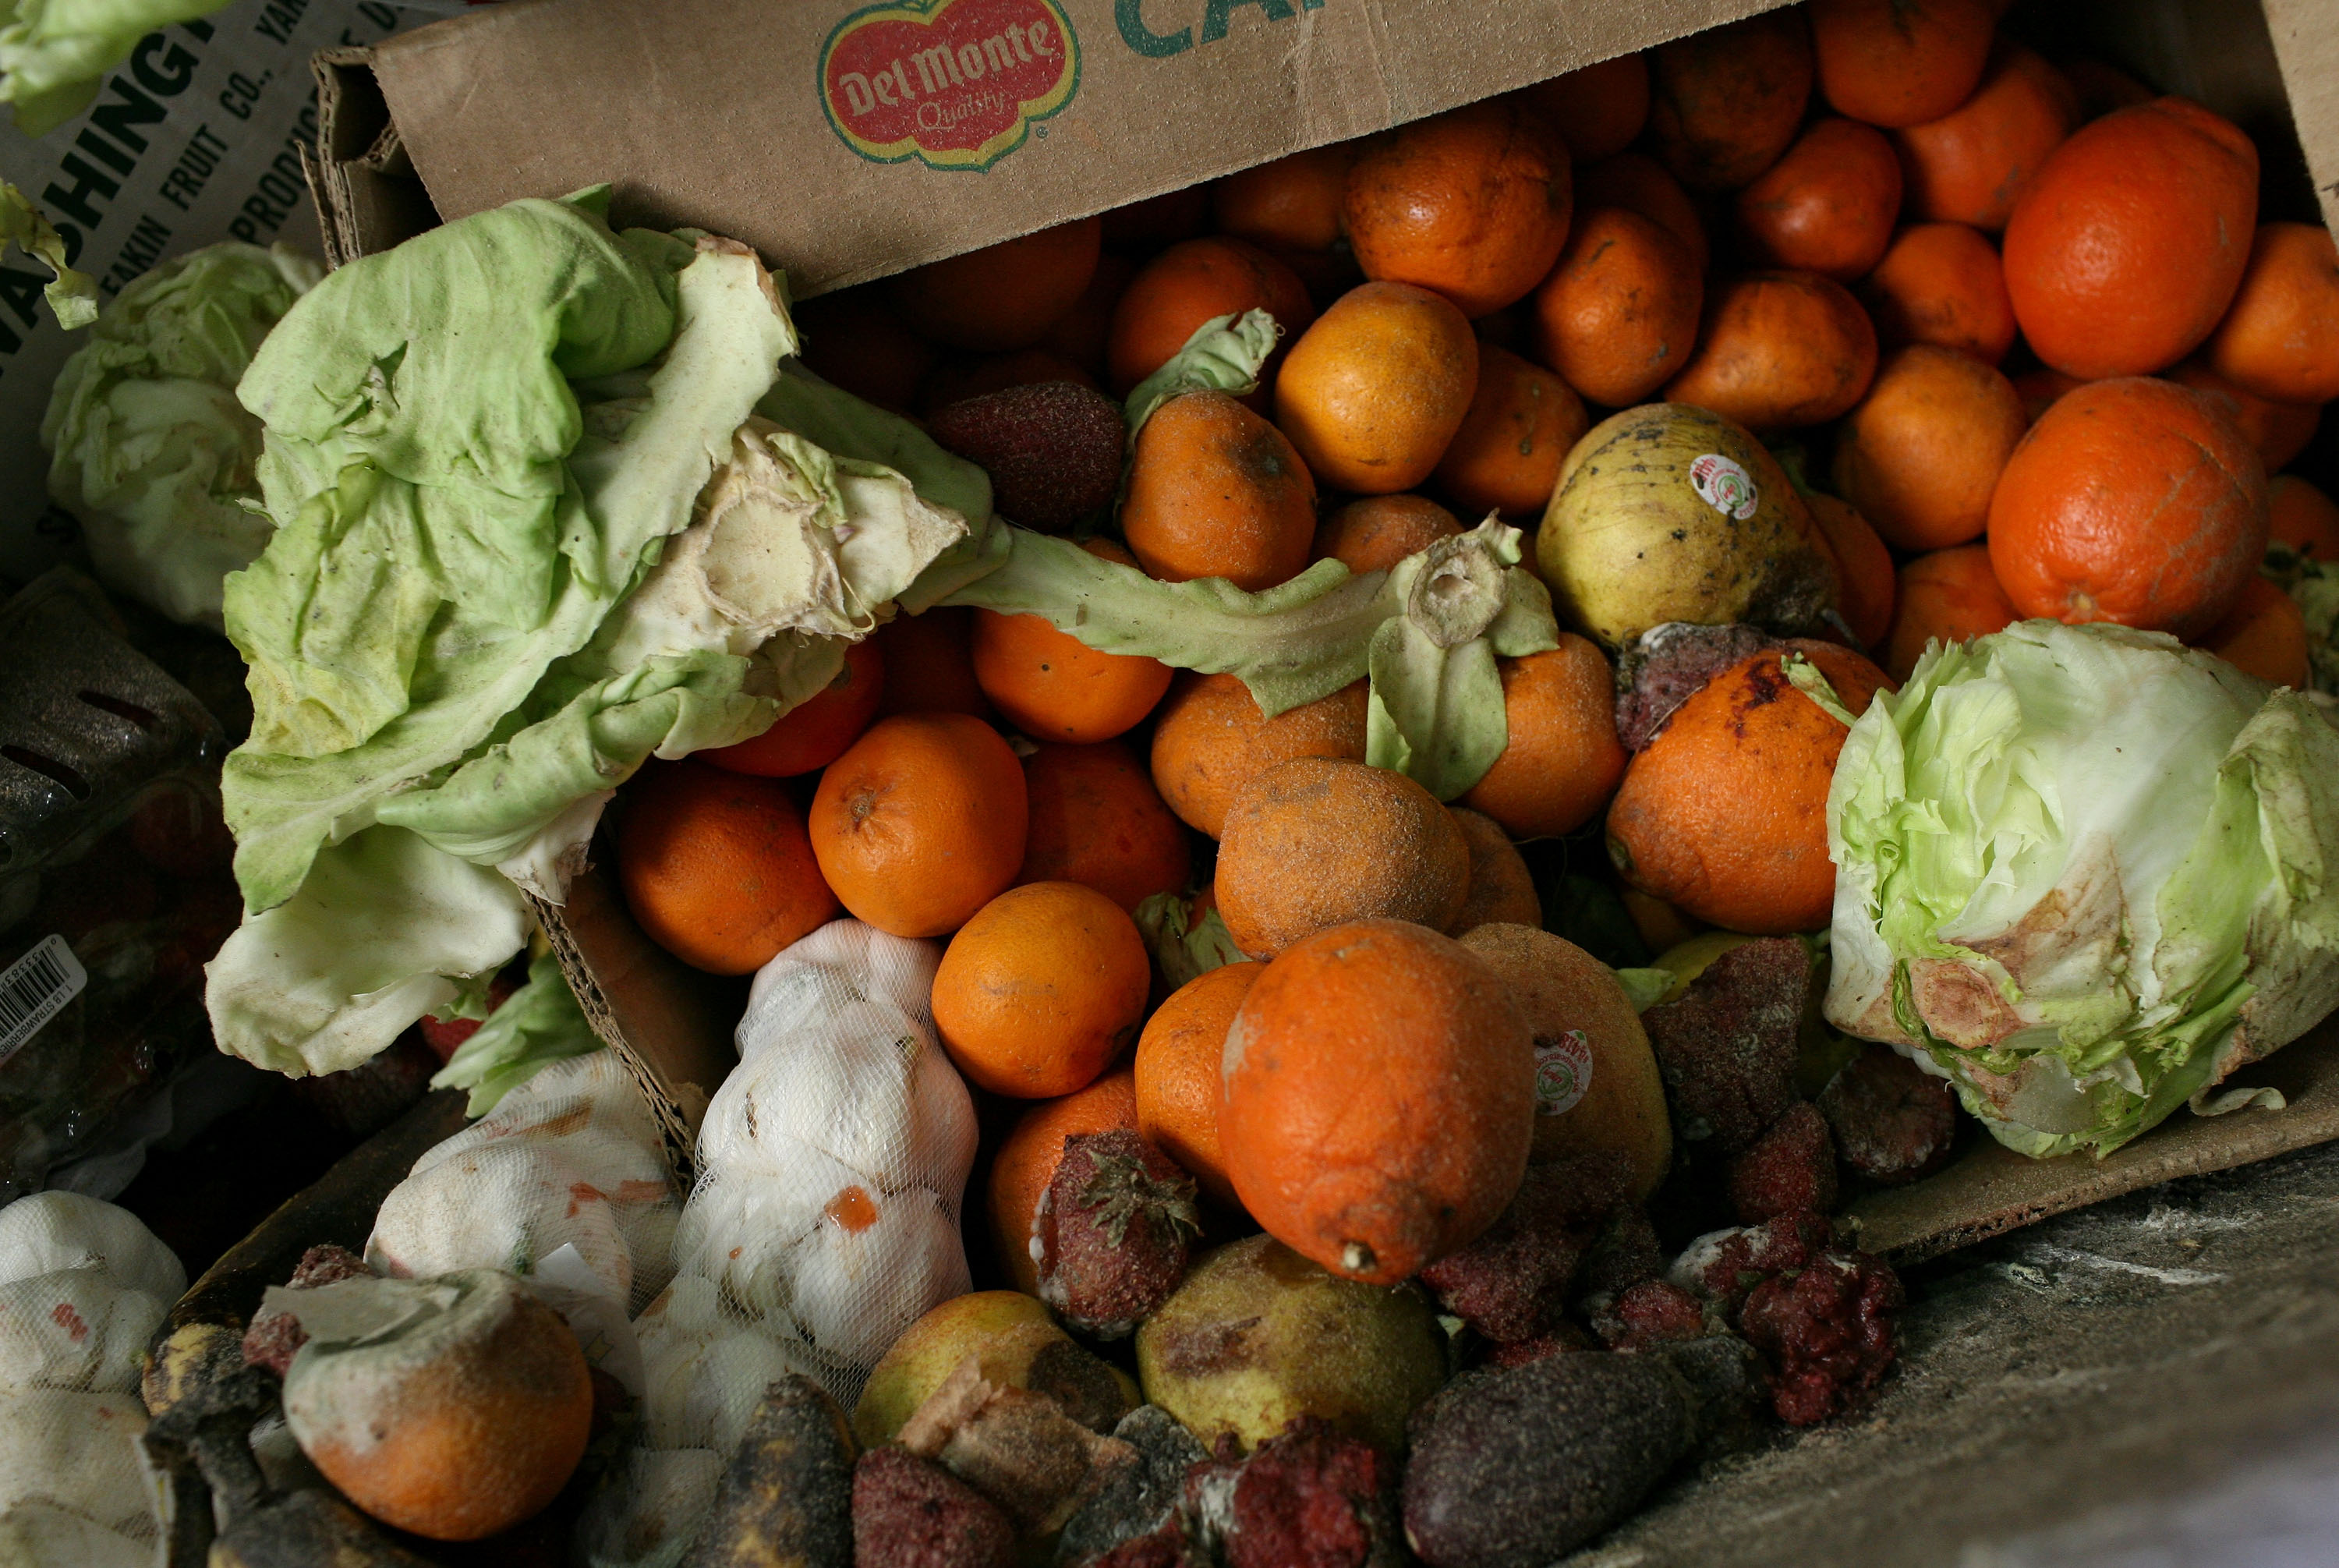 Thousands Of San Francisco Area Restaurants Turn Food Waste Into Fertilizer